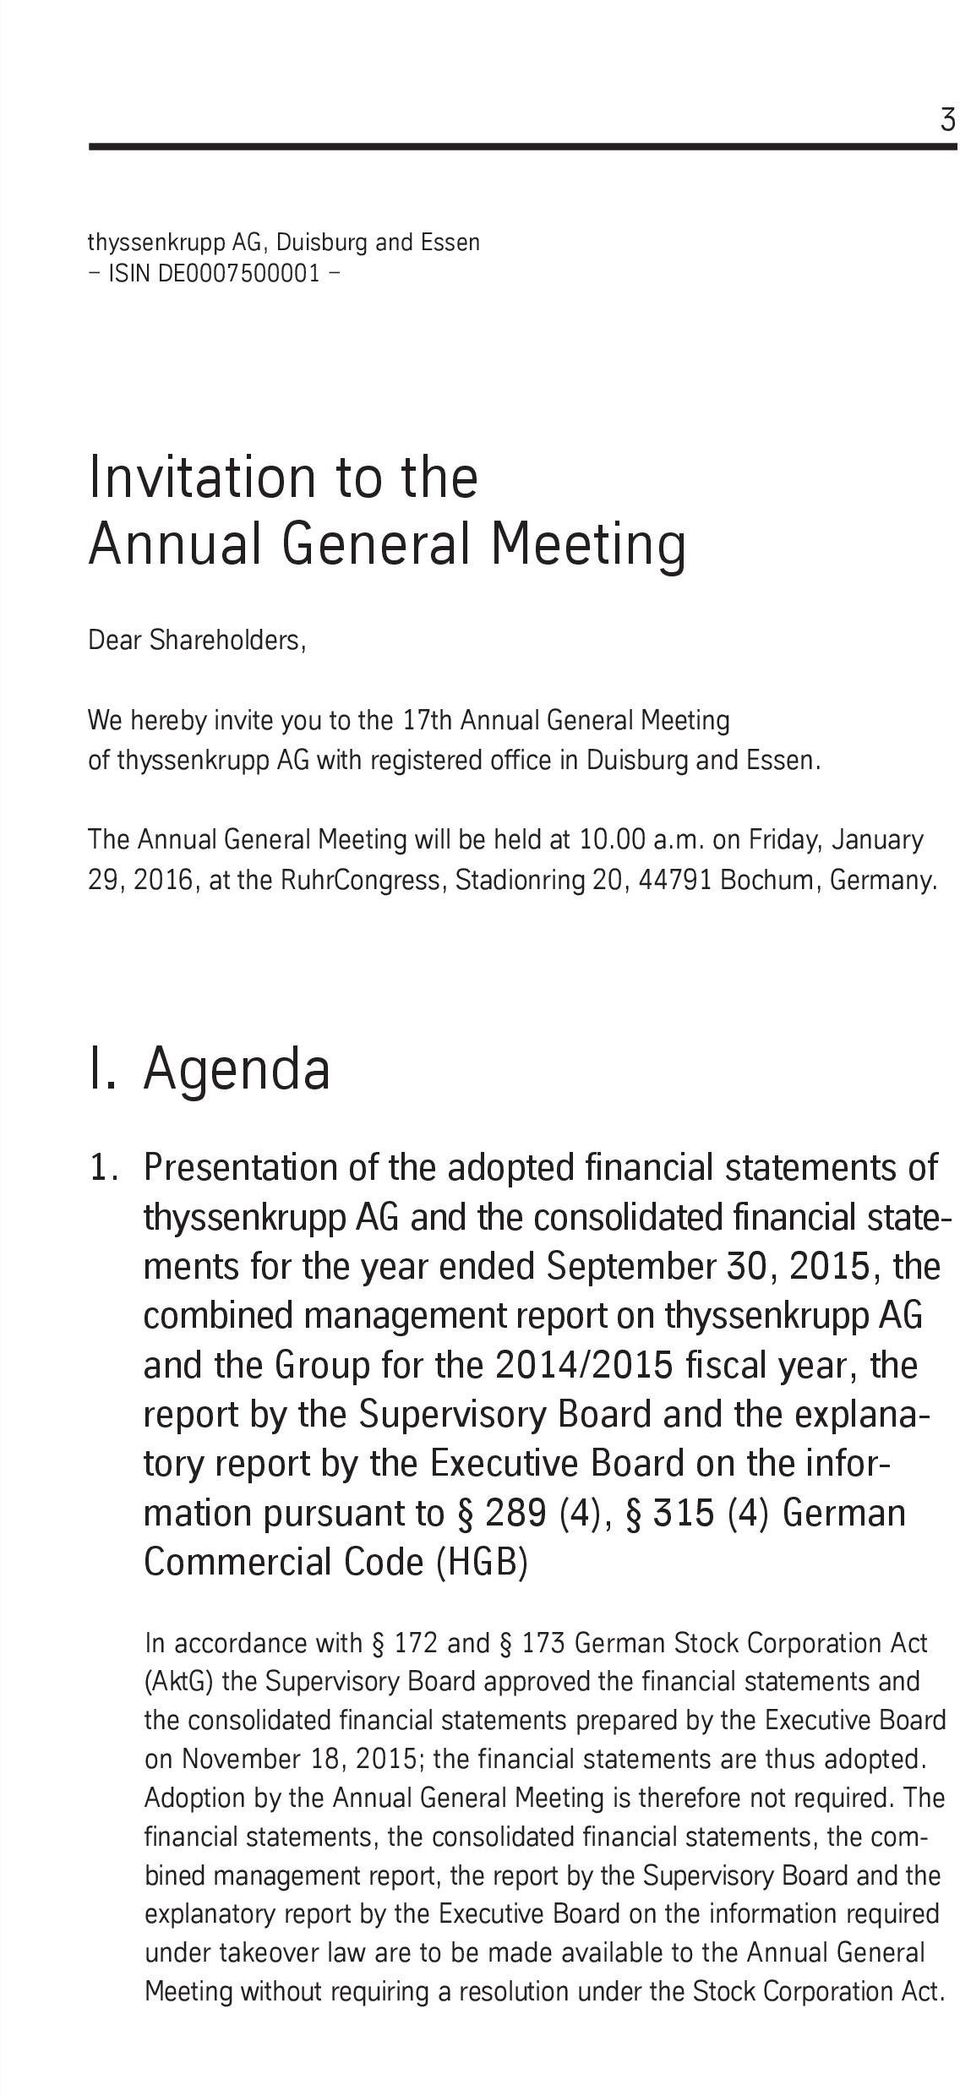 Presentation of the adopted financial statements of thyssenkrupp AG and the consolidated financial statements for the year ended September 30, 2015, the combined management report on thyssenkrupp AG